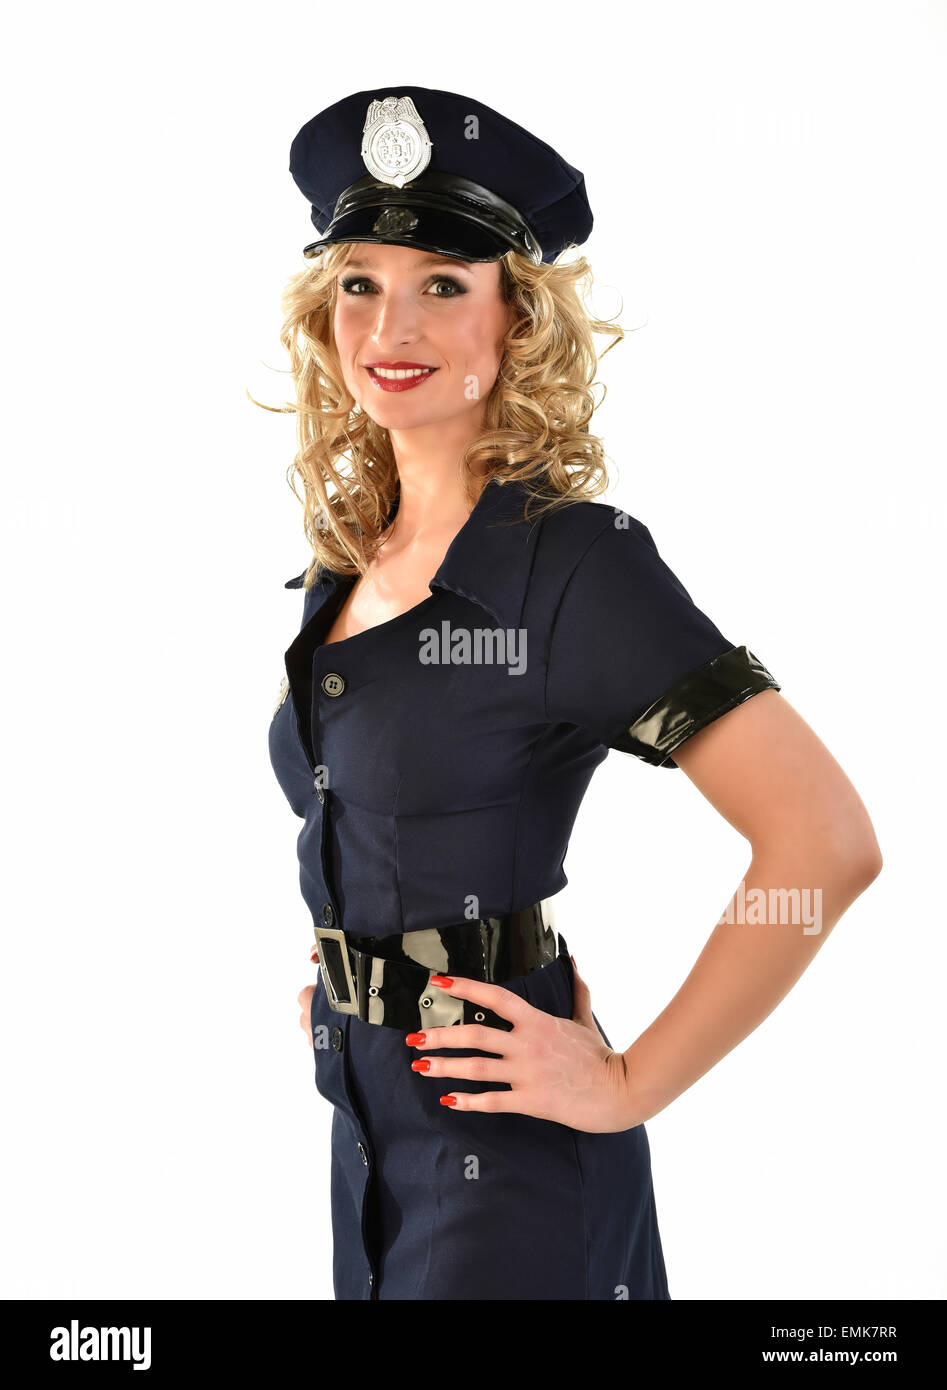 policewoman in american police uniform costume stock